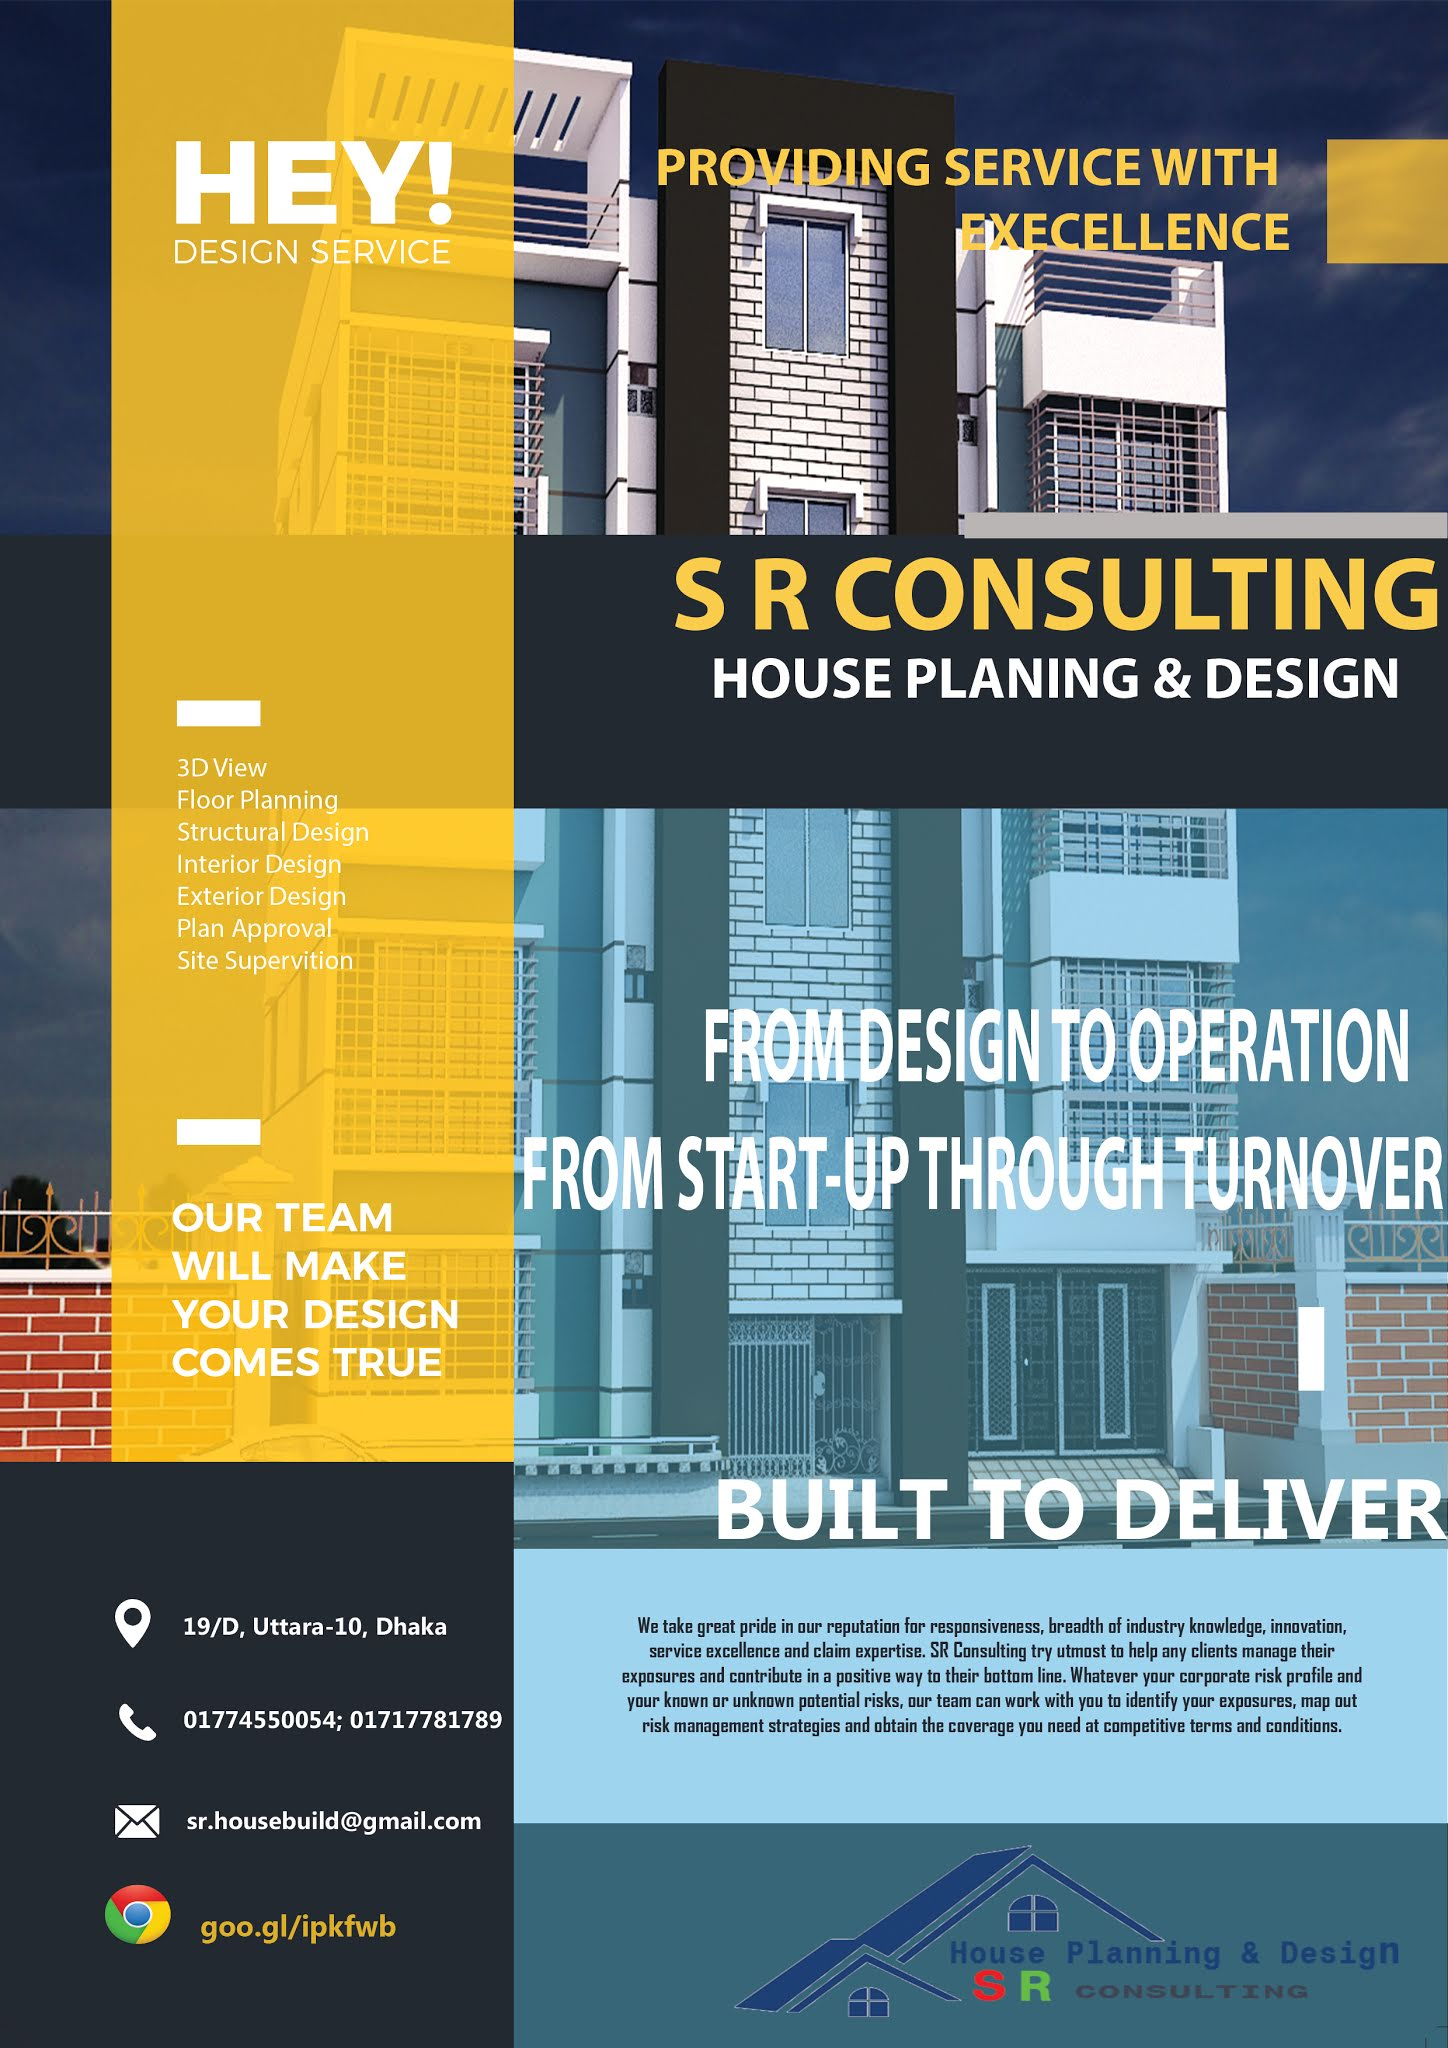 SR Consulting